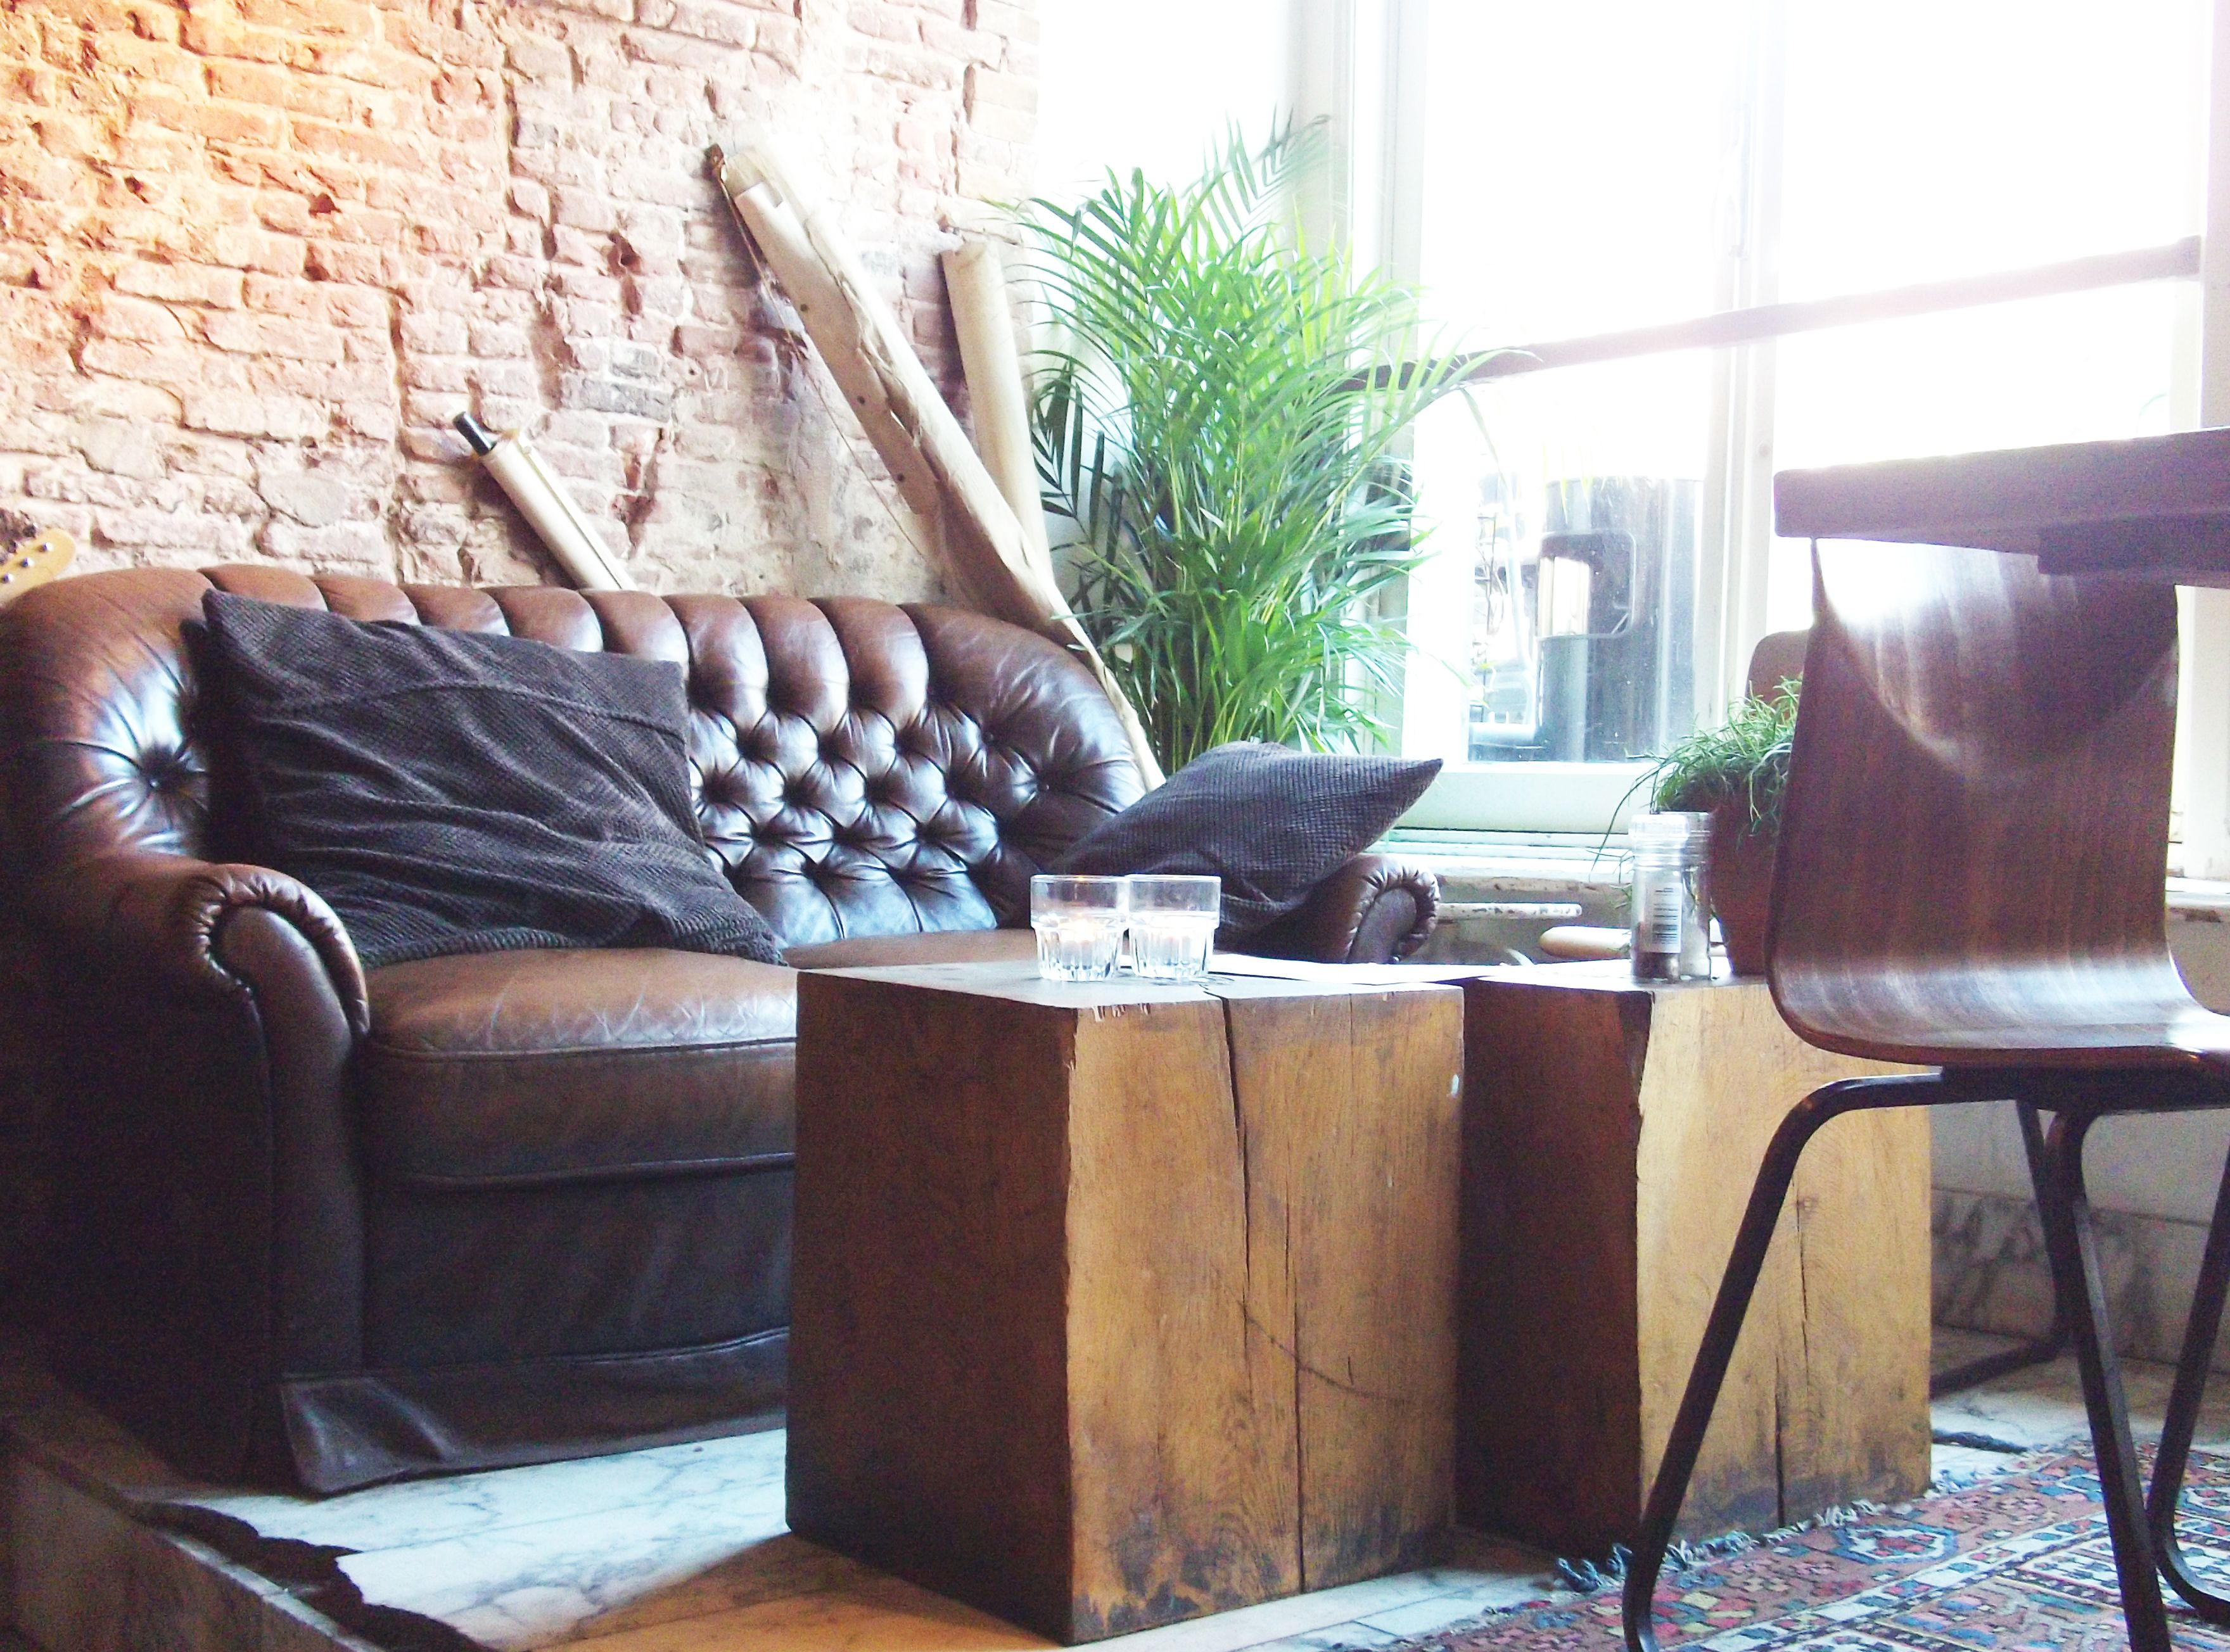 Vintage interiors and Brunch in Paper Planes, Rokin 81 - Amsterdam City Guide